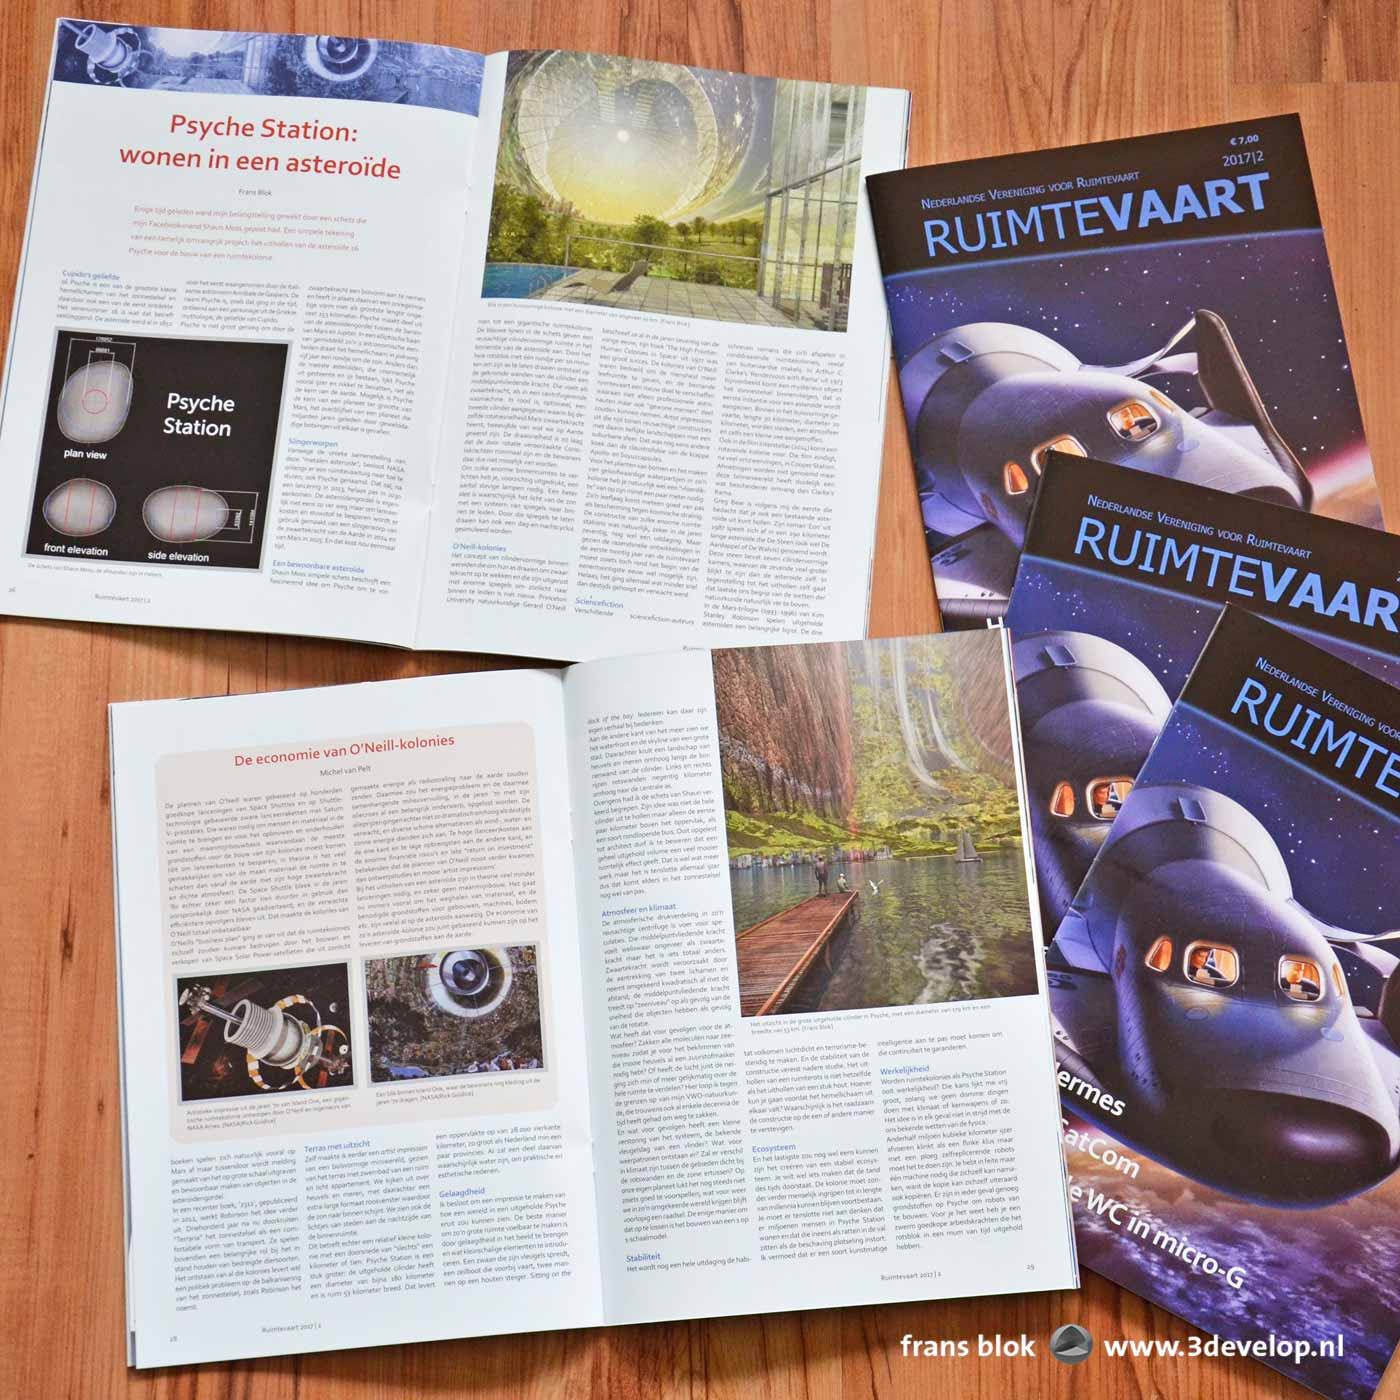 Ruimtevaart magazine, published by the Dutch Spaceflight Society, open at an article by Frans Blok about asteroid Psyche